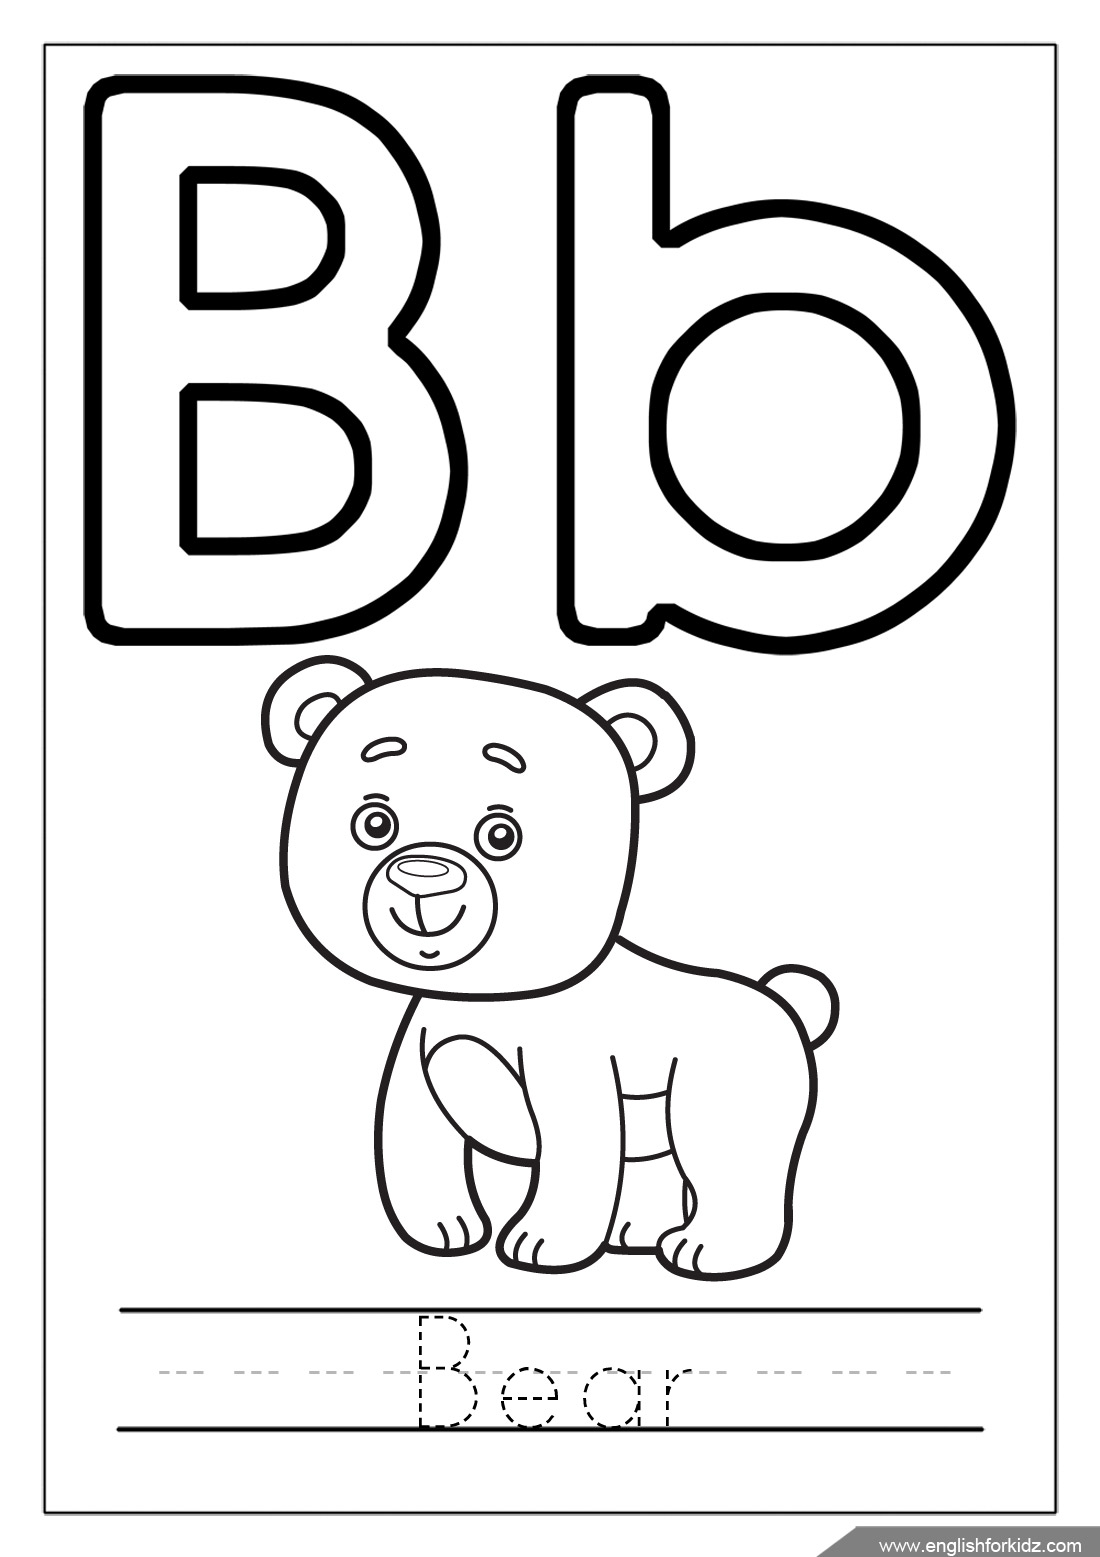 Printable Alphabet Coloring Pages Letters A